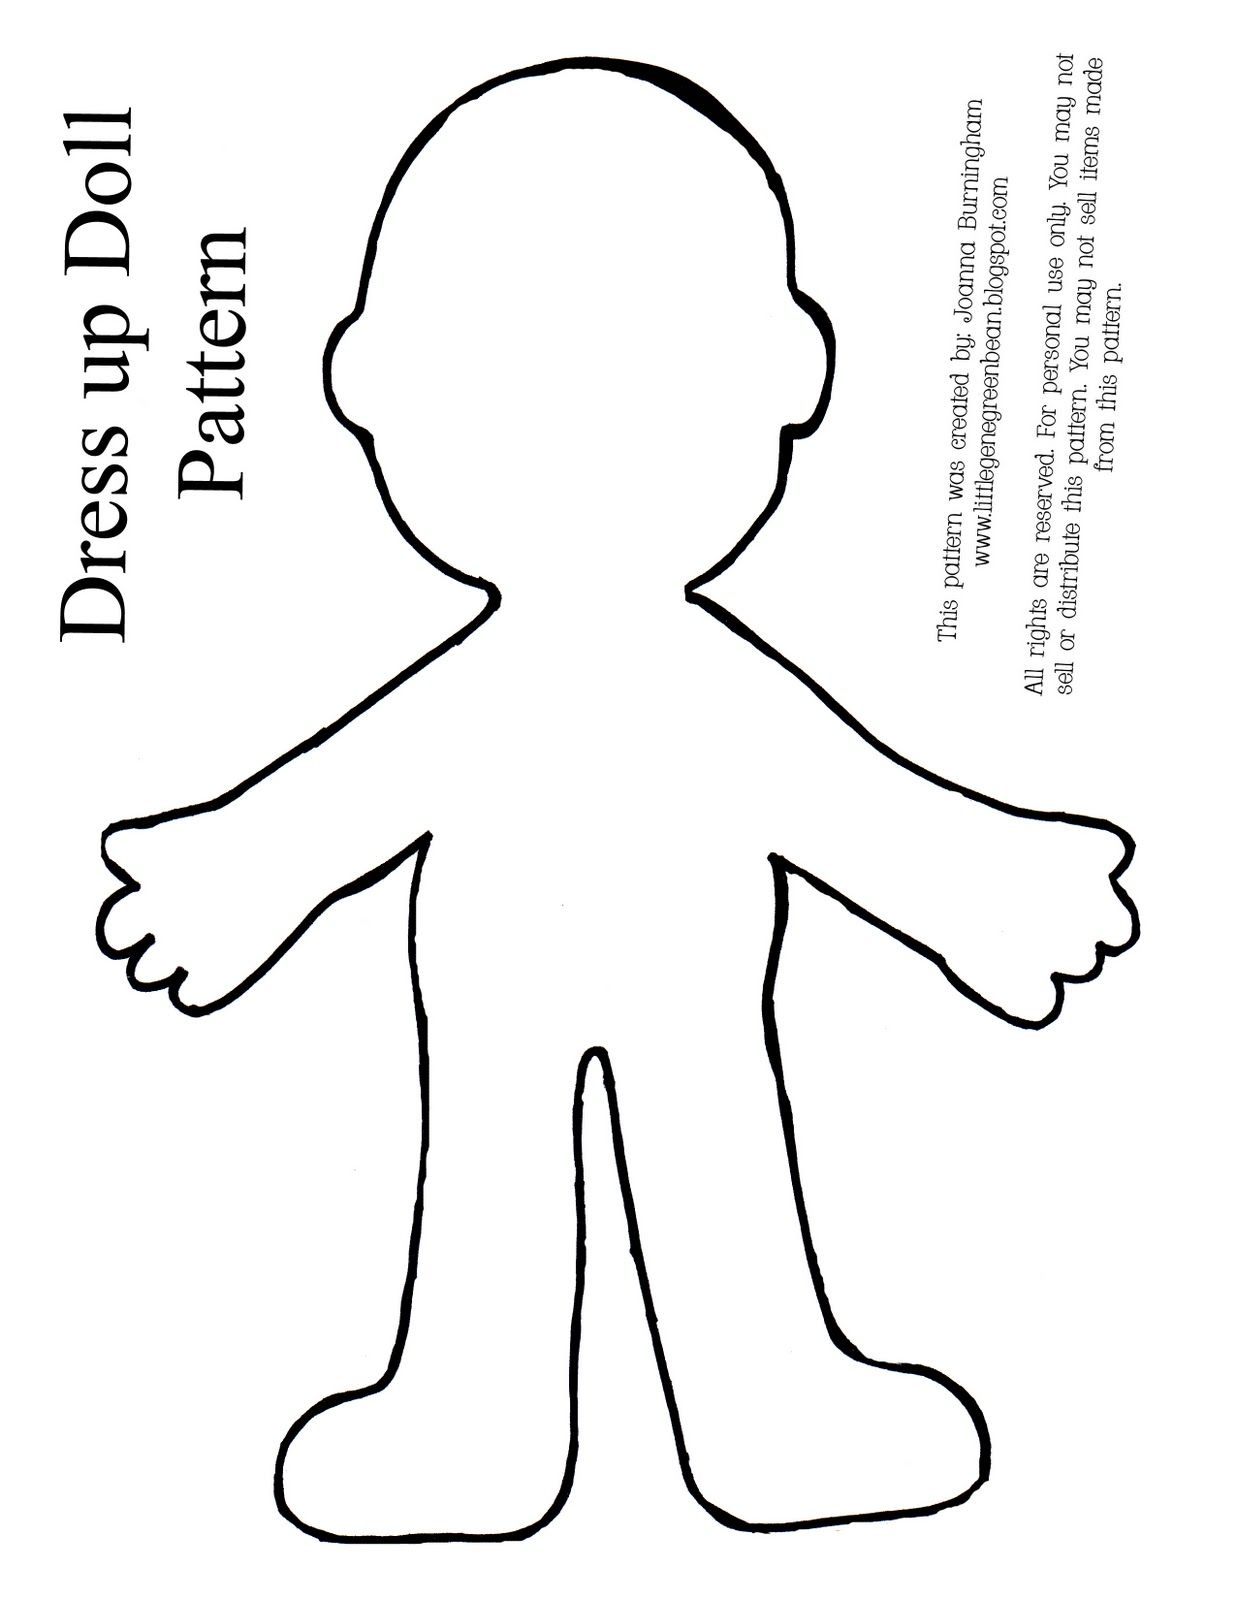 Make dolls and clothing from felt. I'd also add small